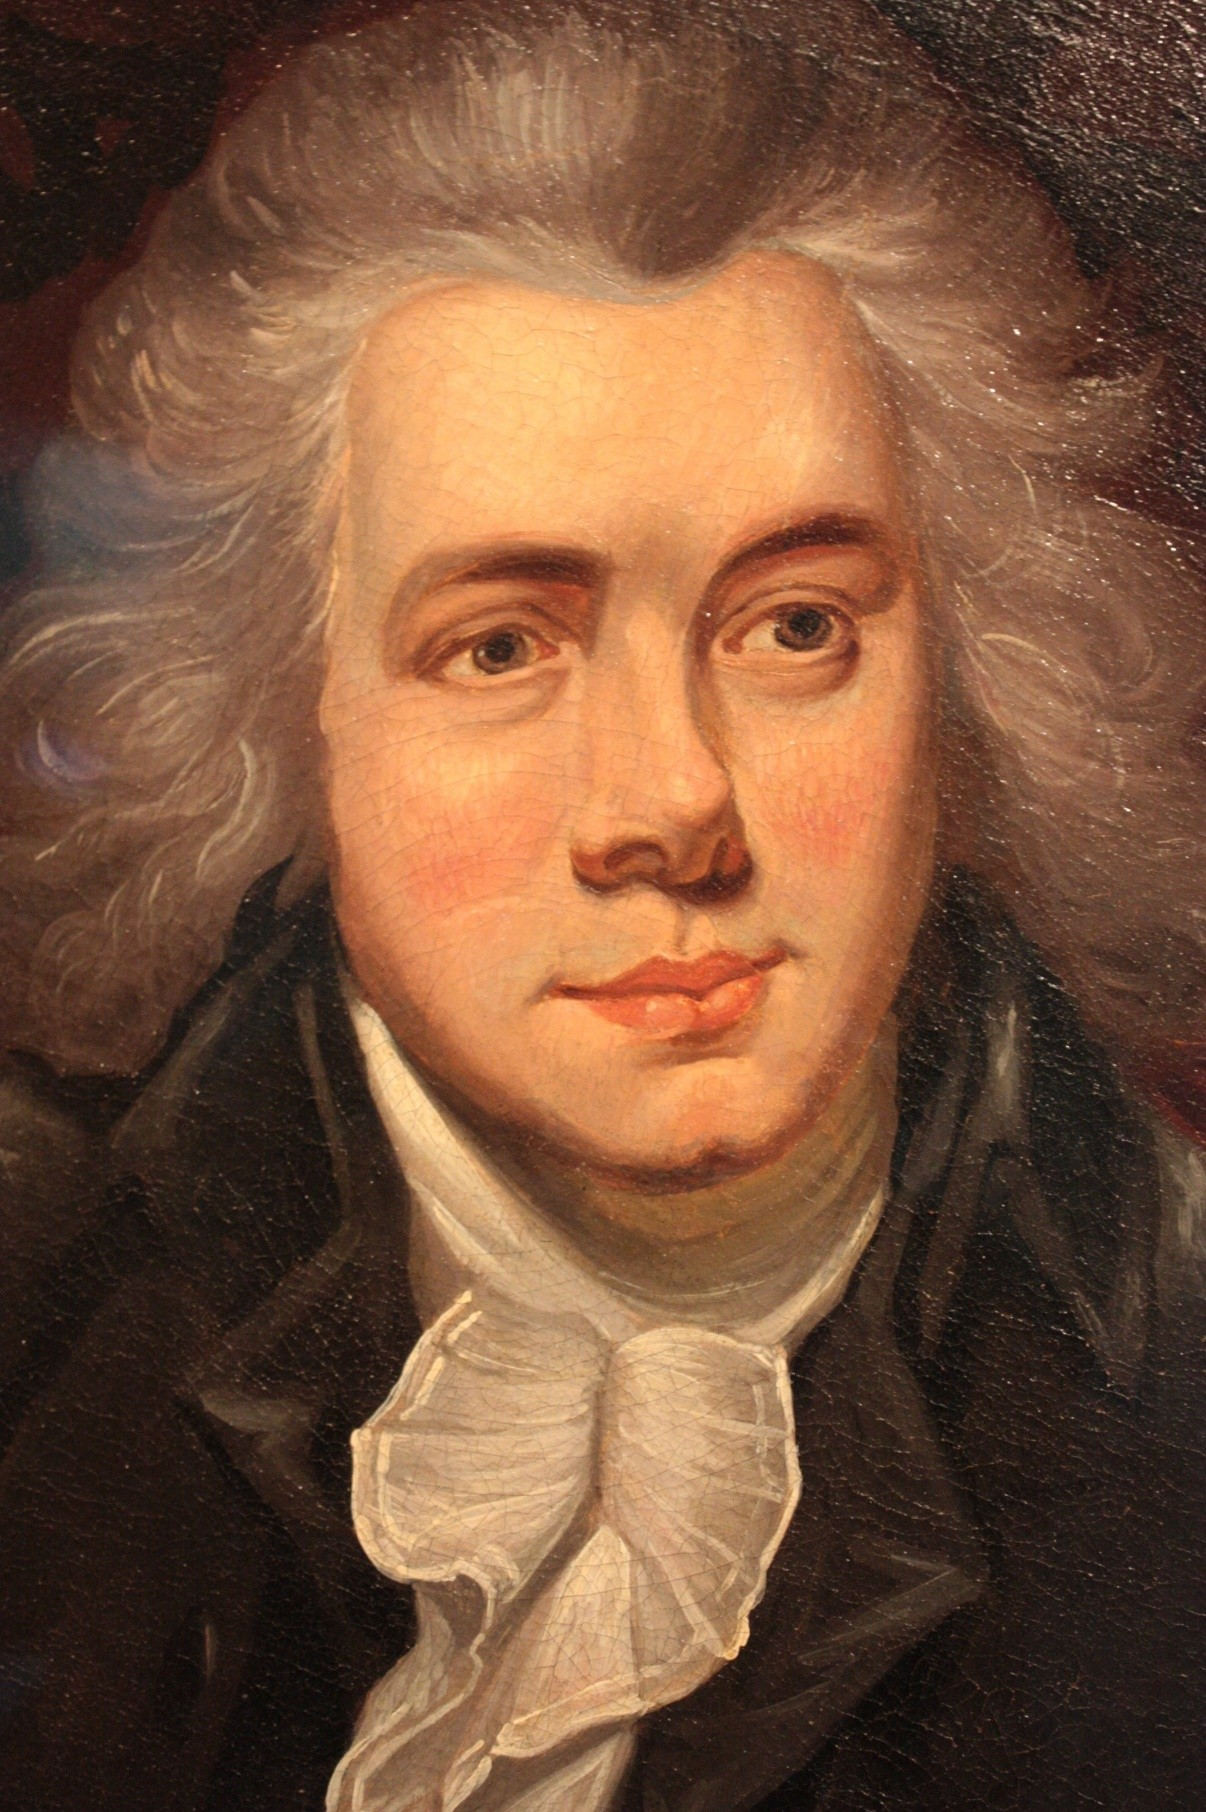 Photo Credit: https://upload.wikimedia.org/wikipedia/commons/2/2f/William_Wilberforce_c.1790_(after_John_Rising).JPG